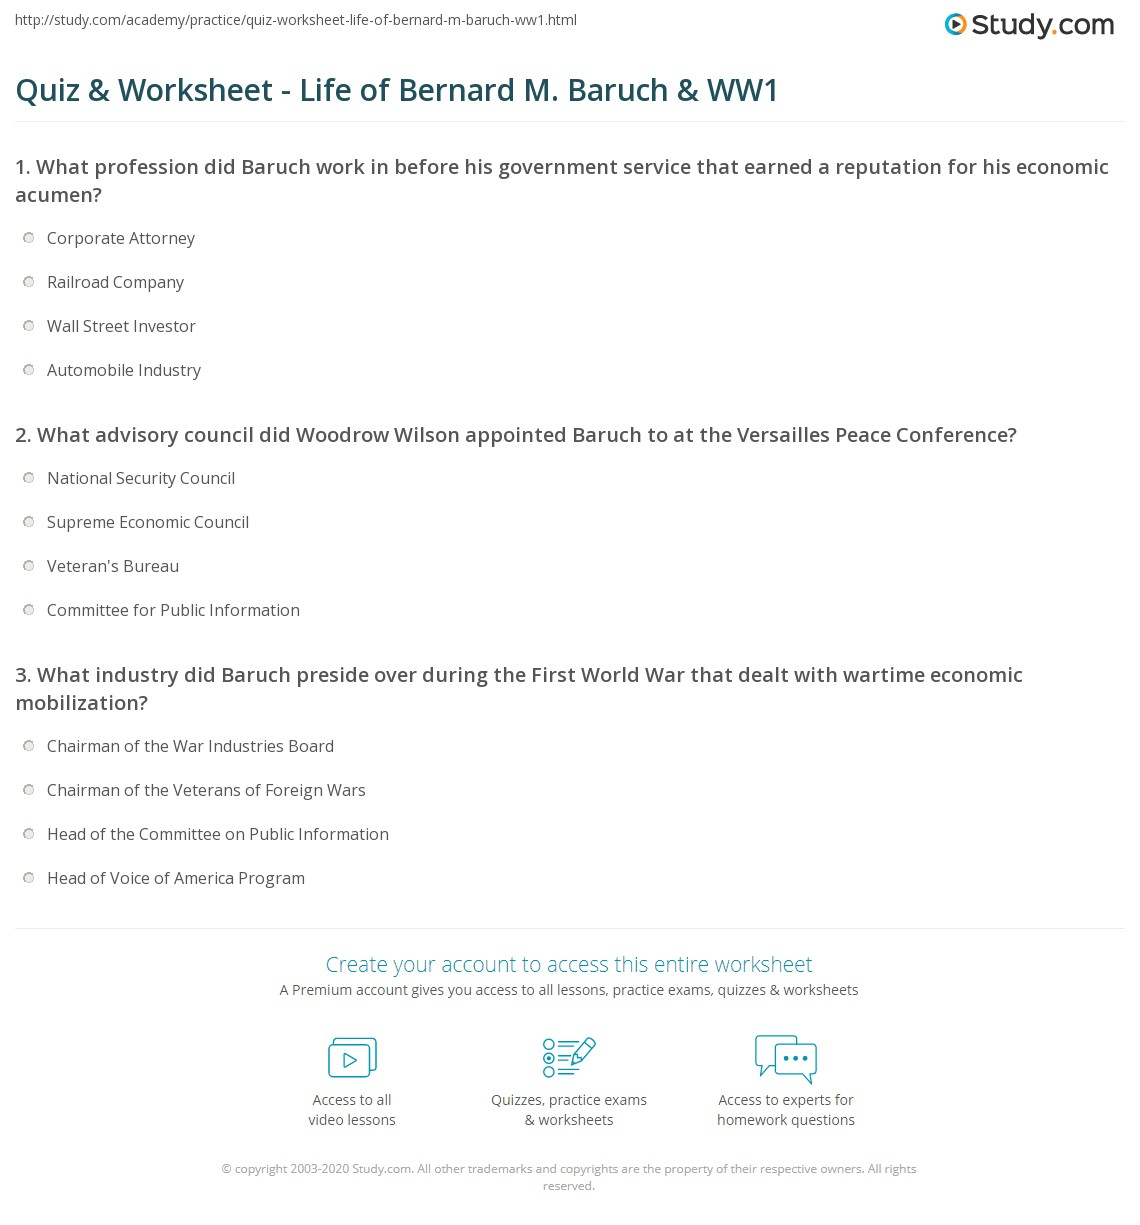 Quiz Worksheet Life Of Bernard M Baruch Ww1 Study